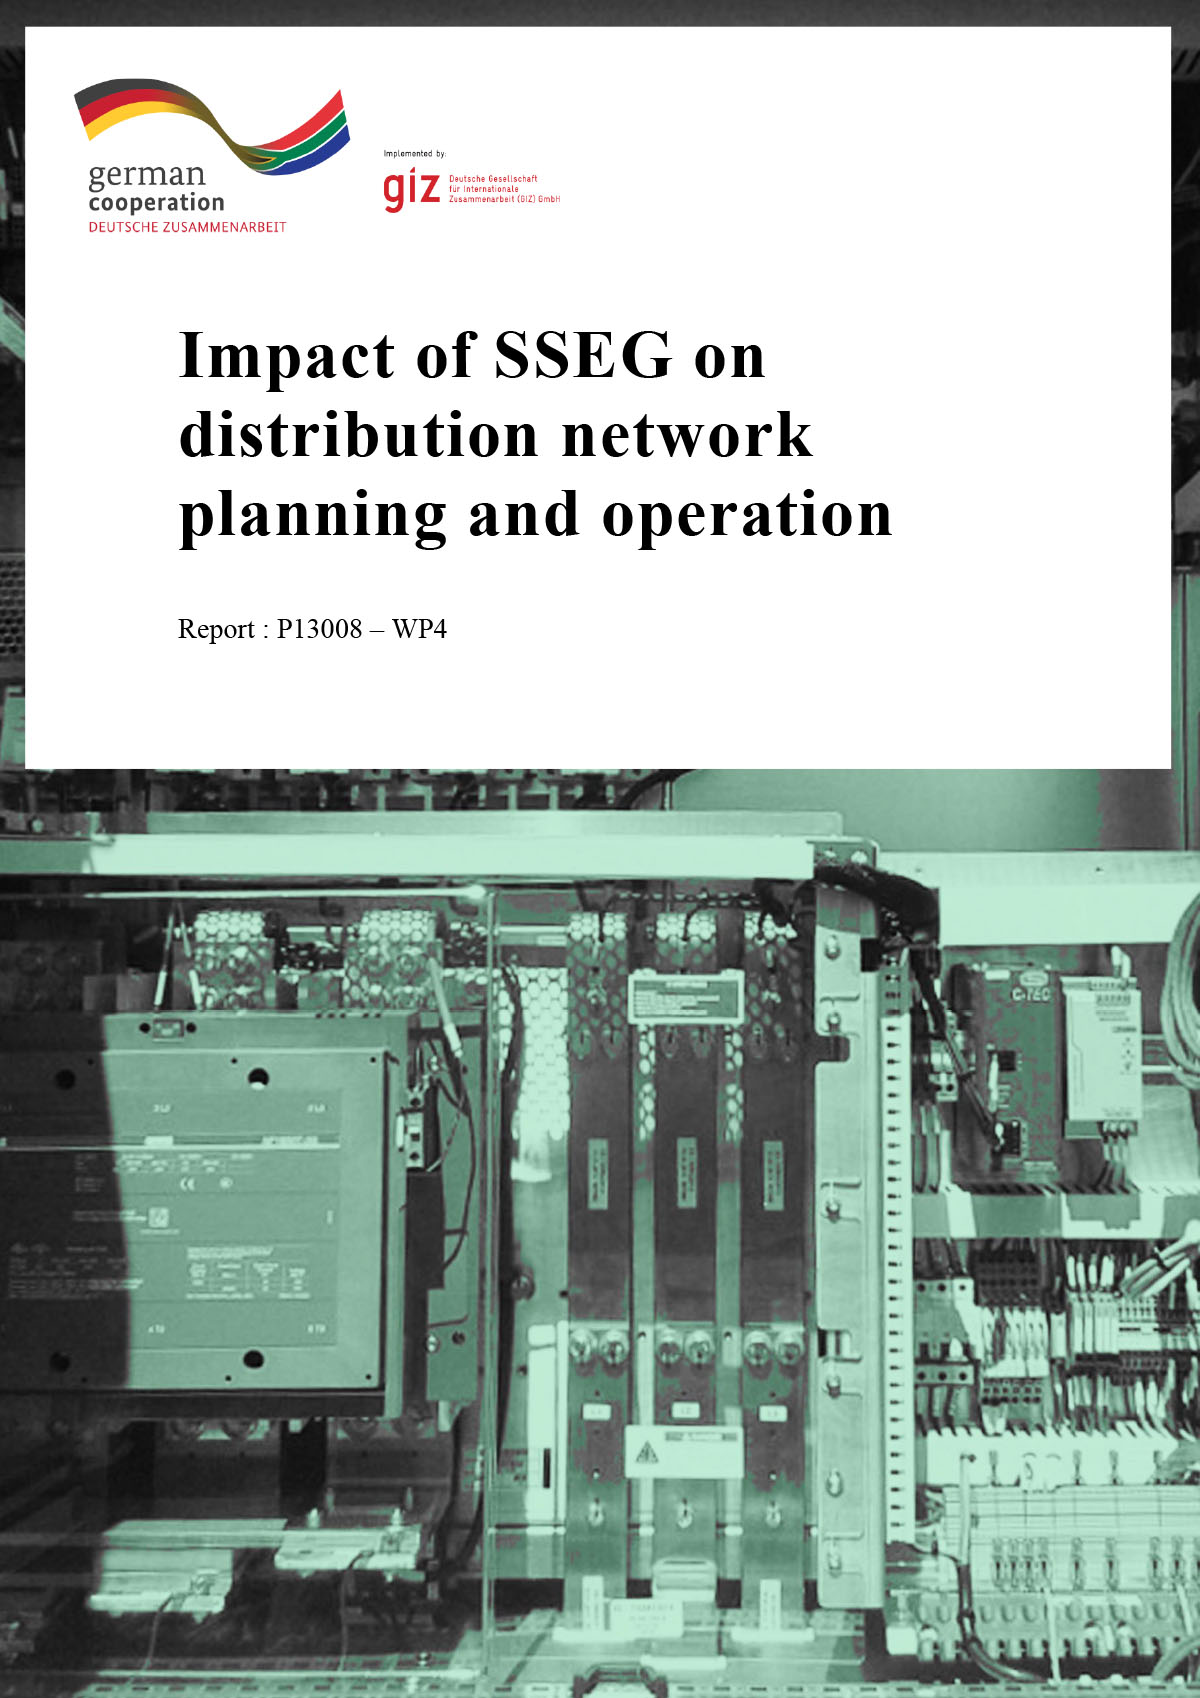 Impact of SSEG on distribution network planning and operation